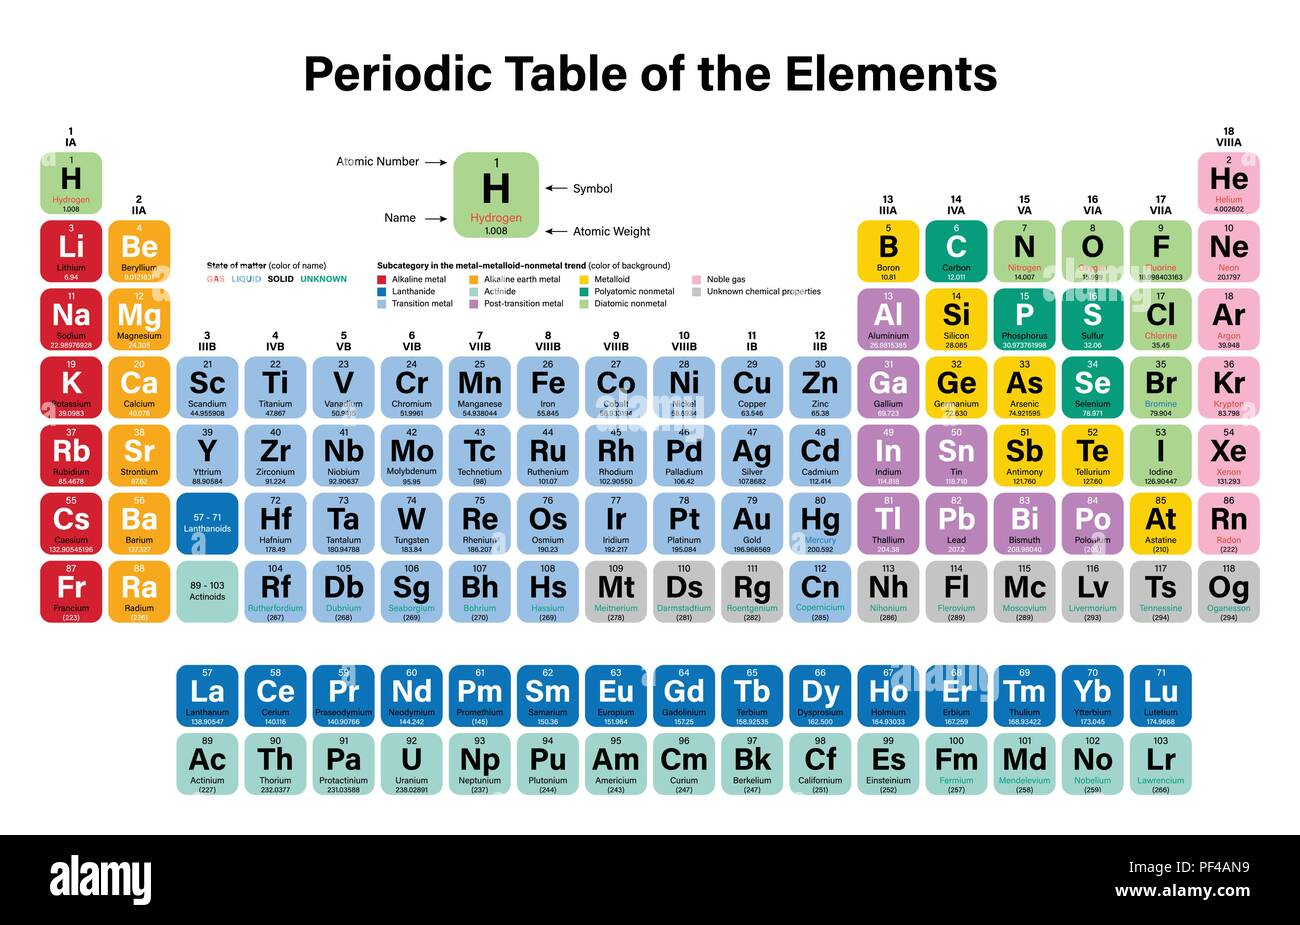 periodic table of the elements colorful vector illustration shows atomic number symbol name and atomic weight including 2016 the four new elemen